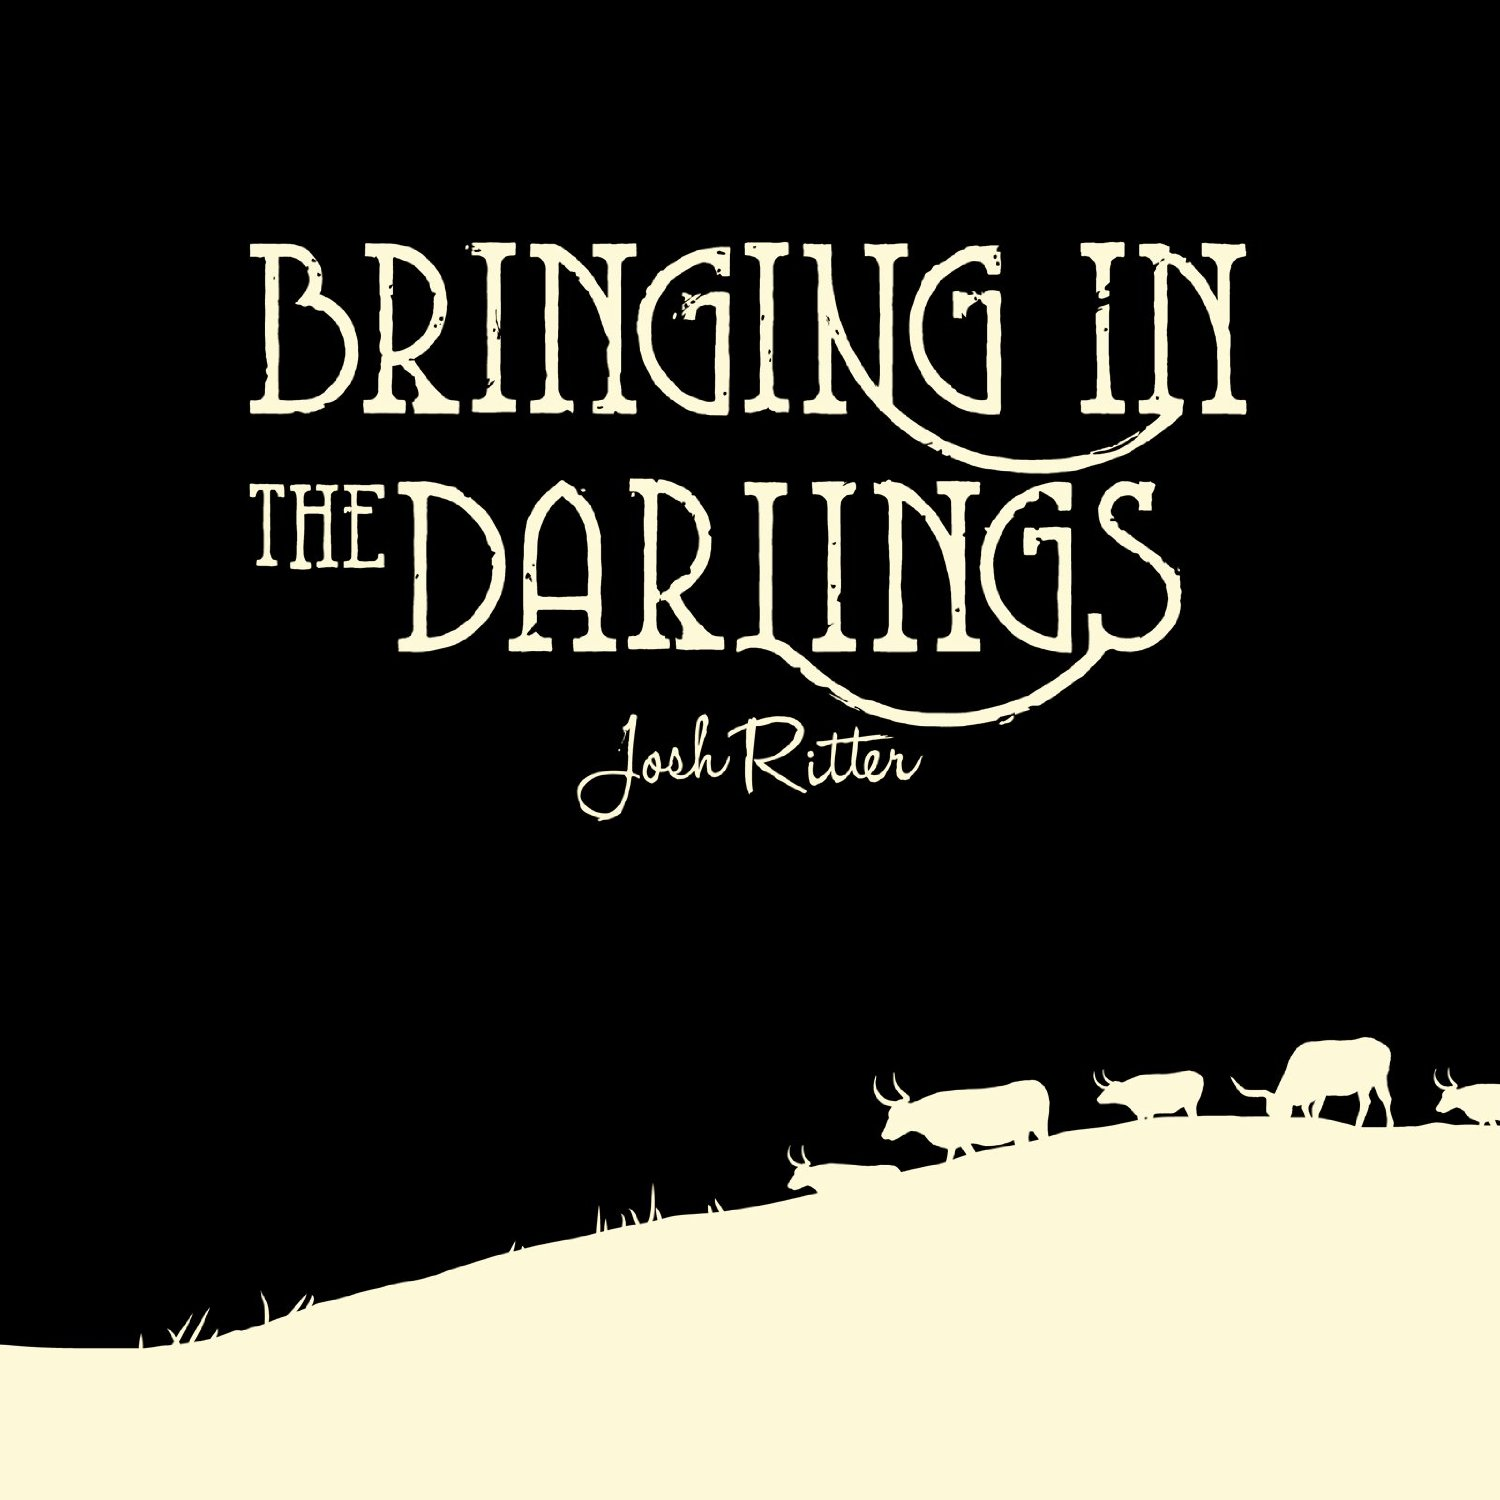 bringing-in-the-darlings